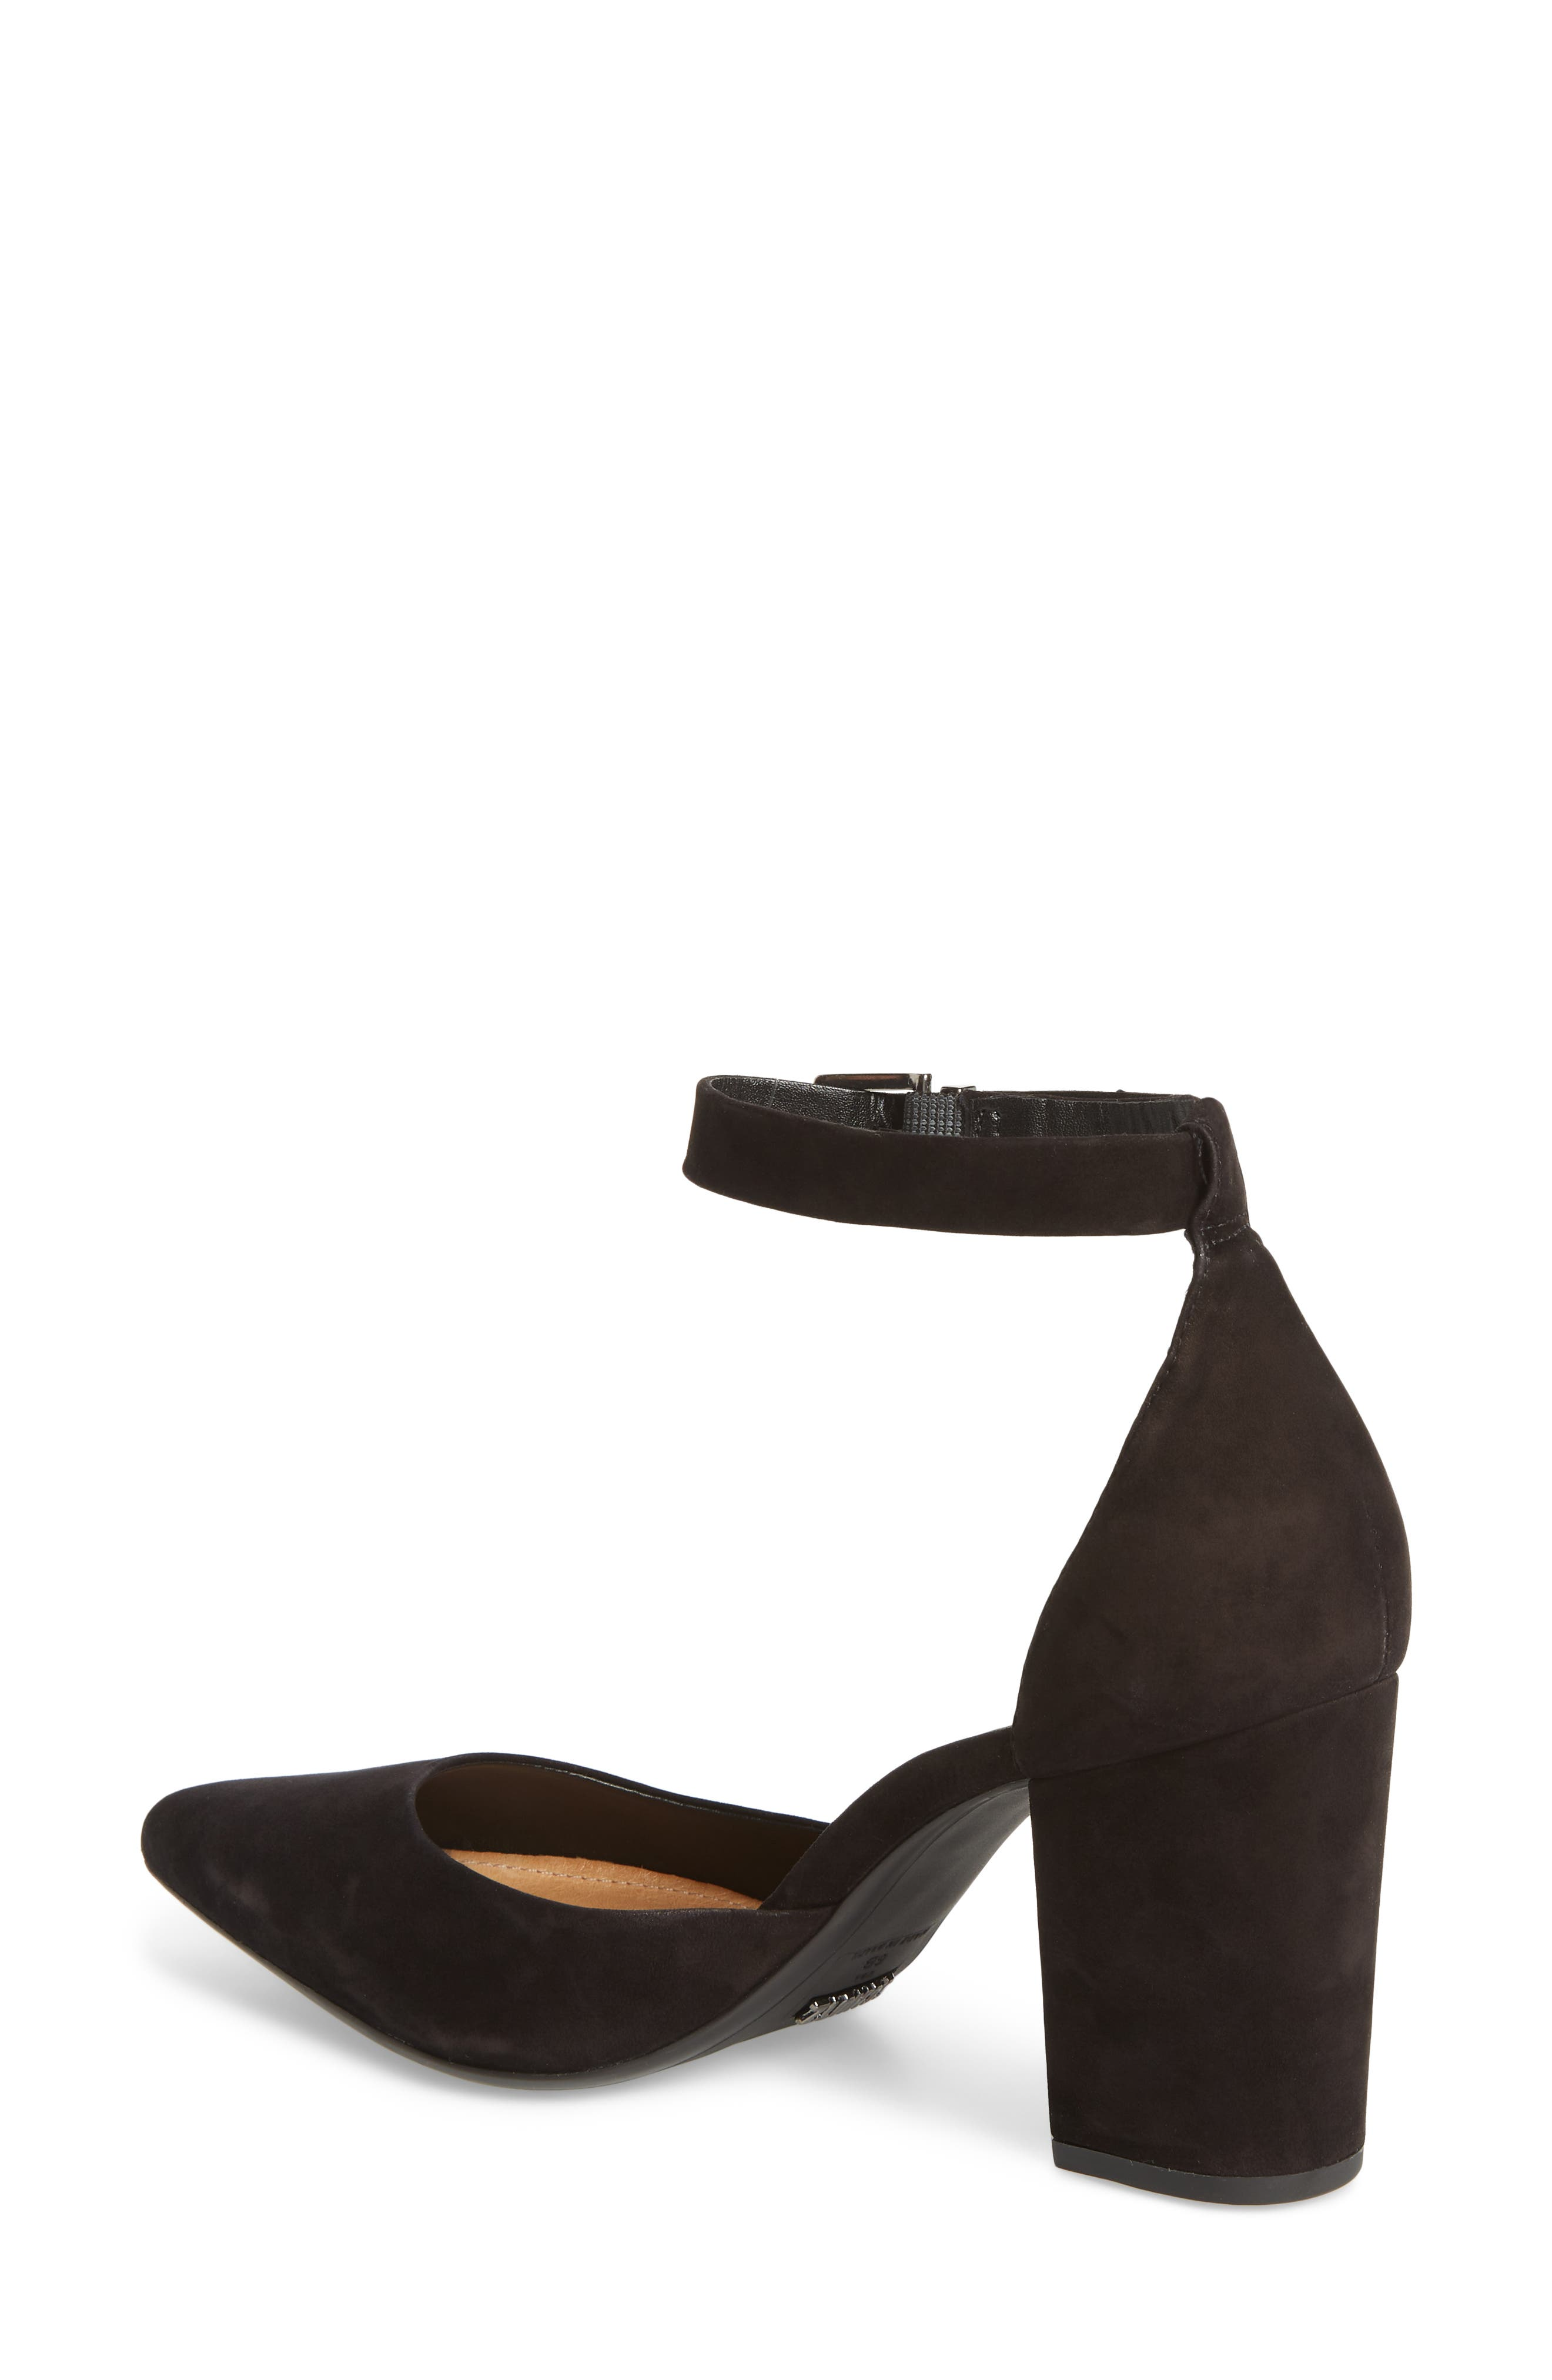 Ionara Ankle Strap Pump,                             Alternate thumbnail 2, color,                             BLACK NUBUCK LEATHER